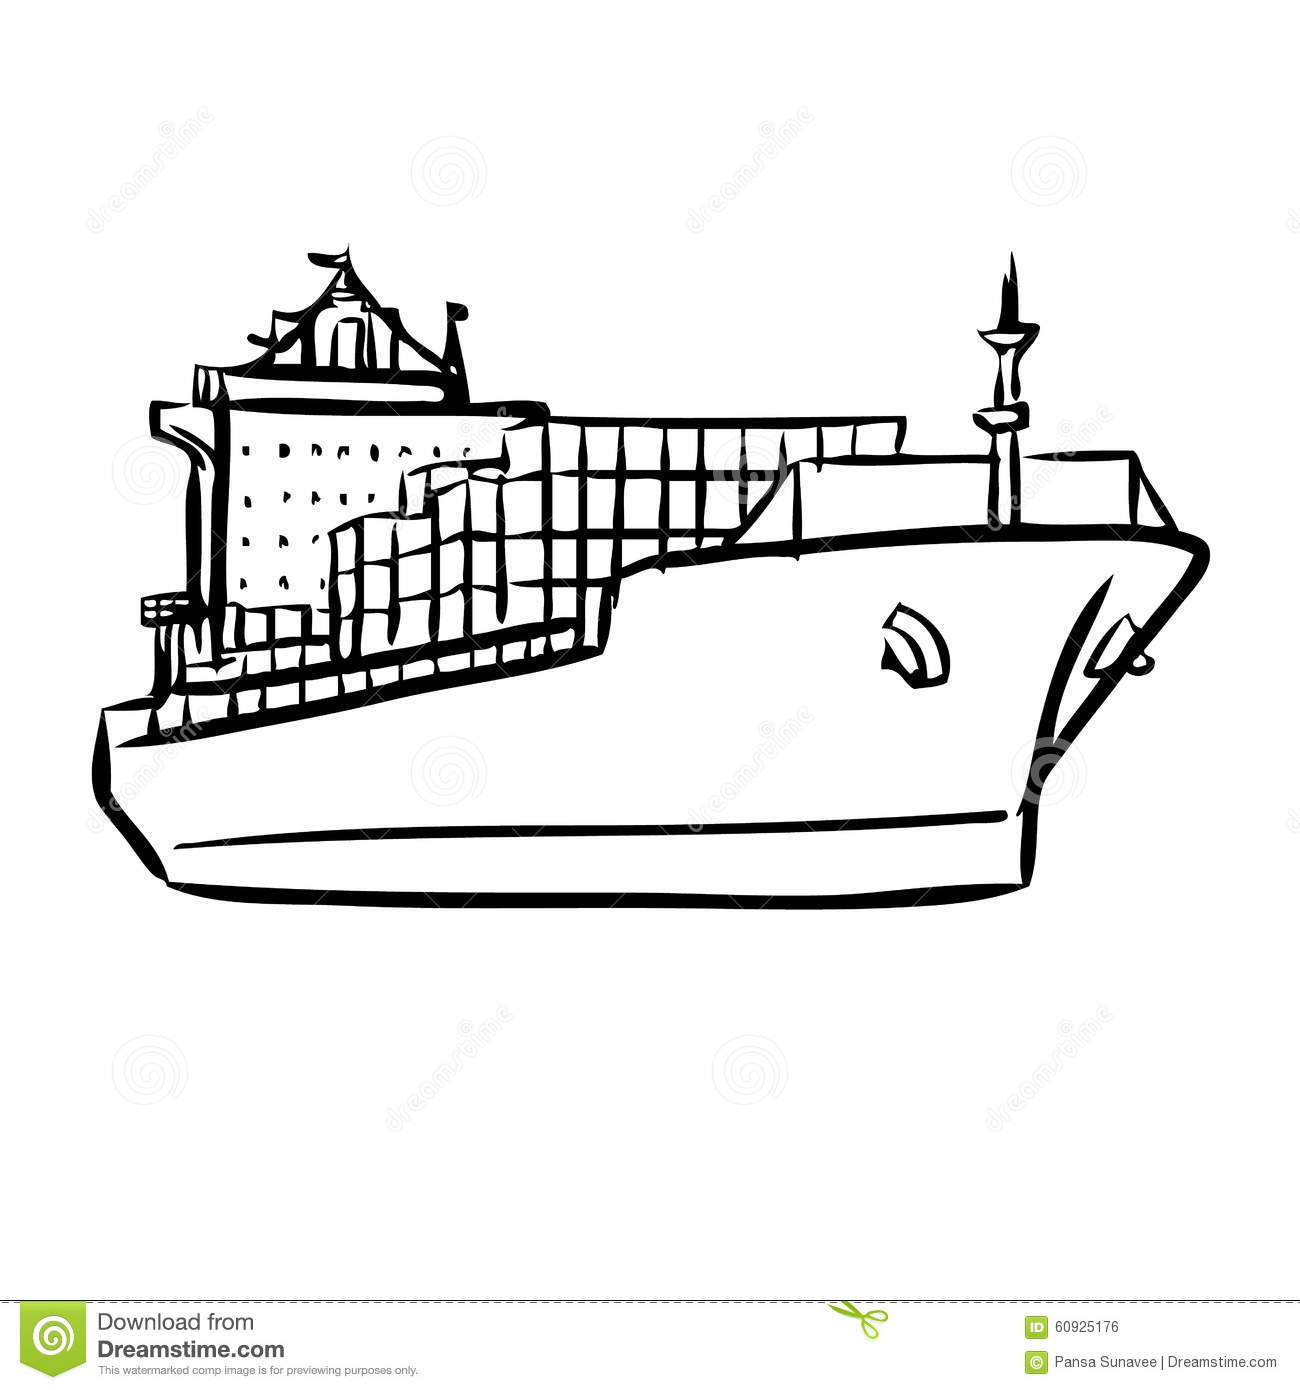 Cargo Ship With Containers Stock Vector Illustration Of